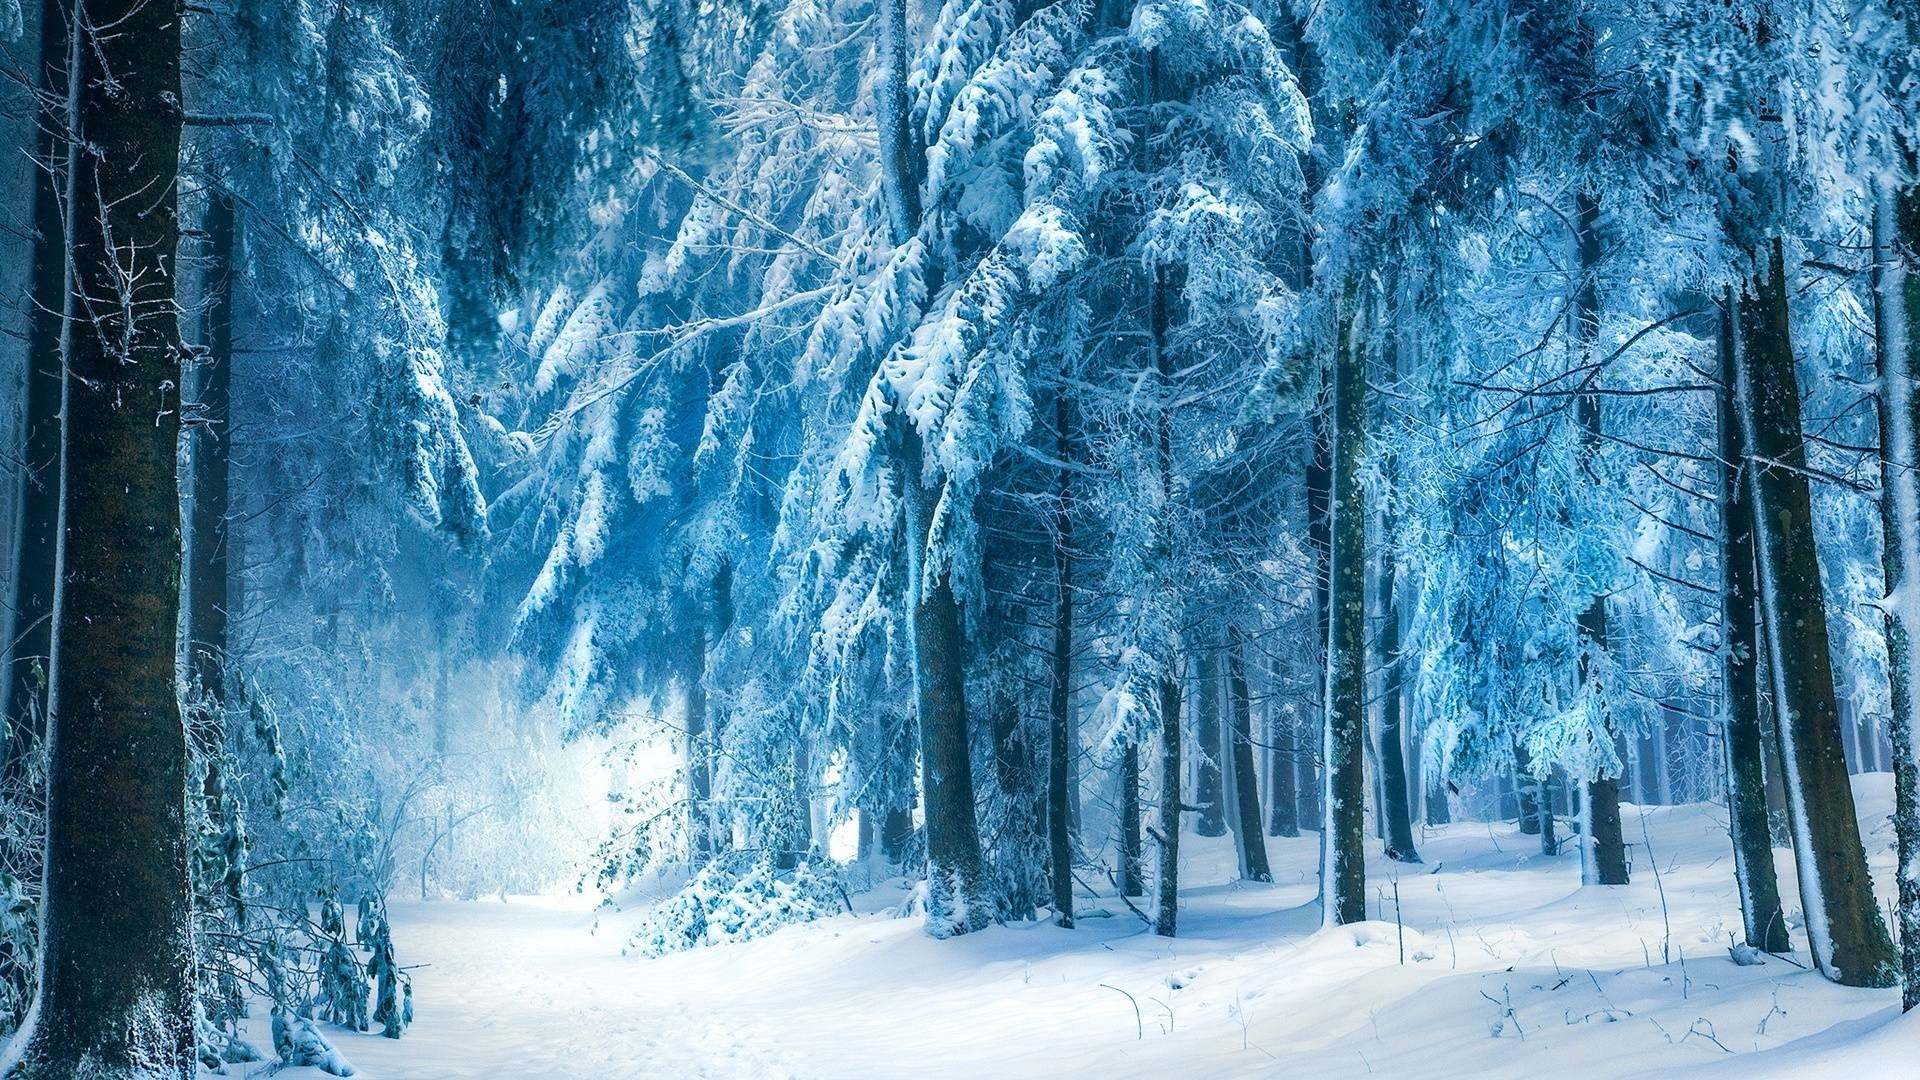 Wallpapers For > Snowy Dark Forest Wallpaper